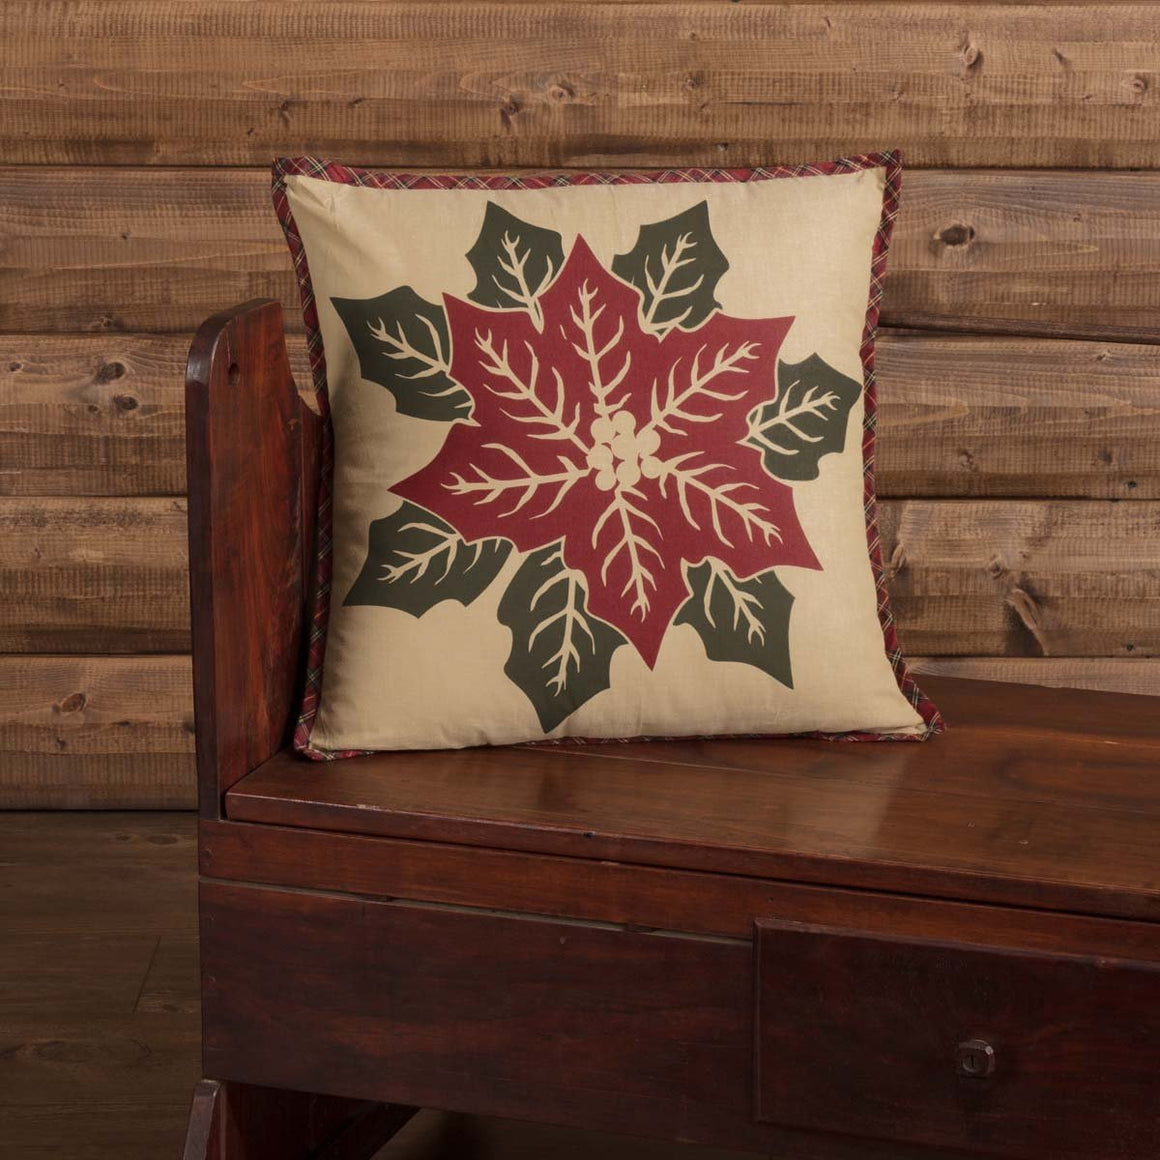 National Quilt Museum Poinsettia Block Pillow 18x18